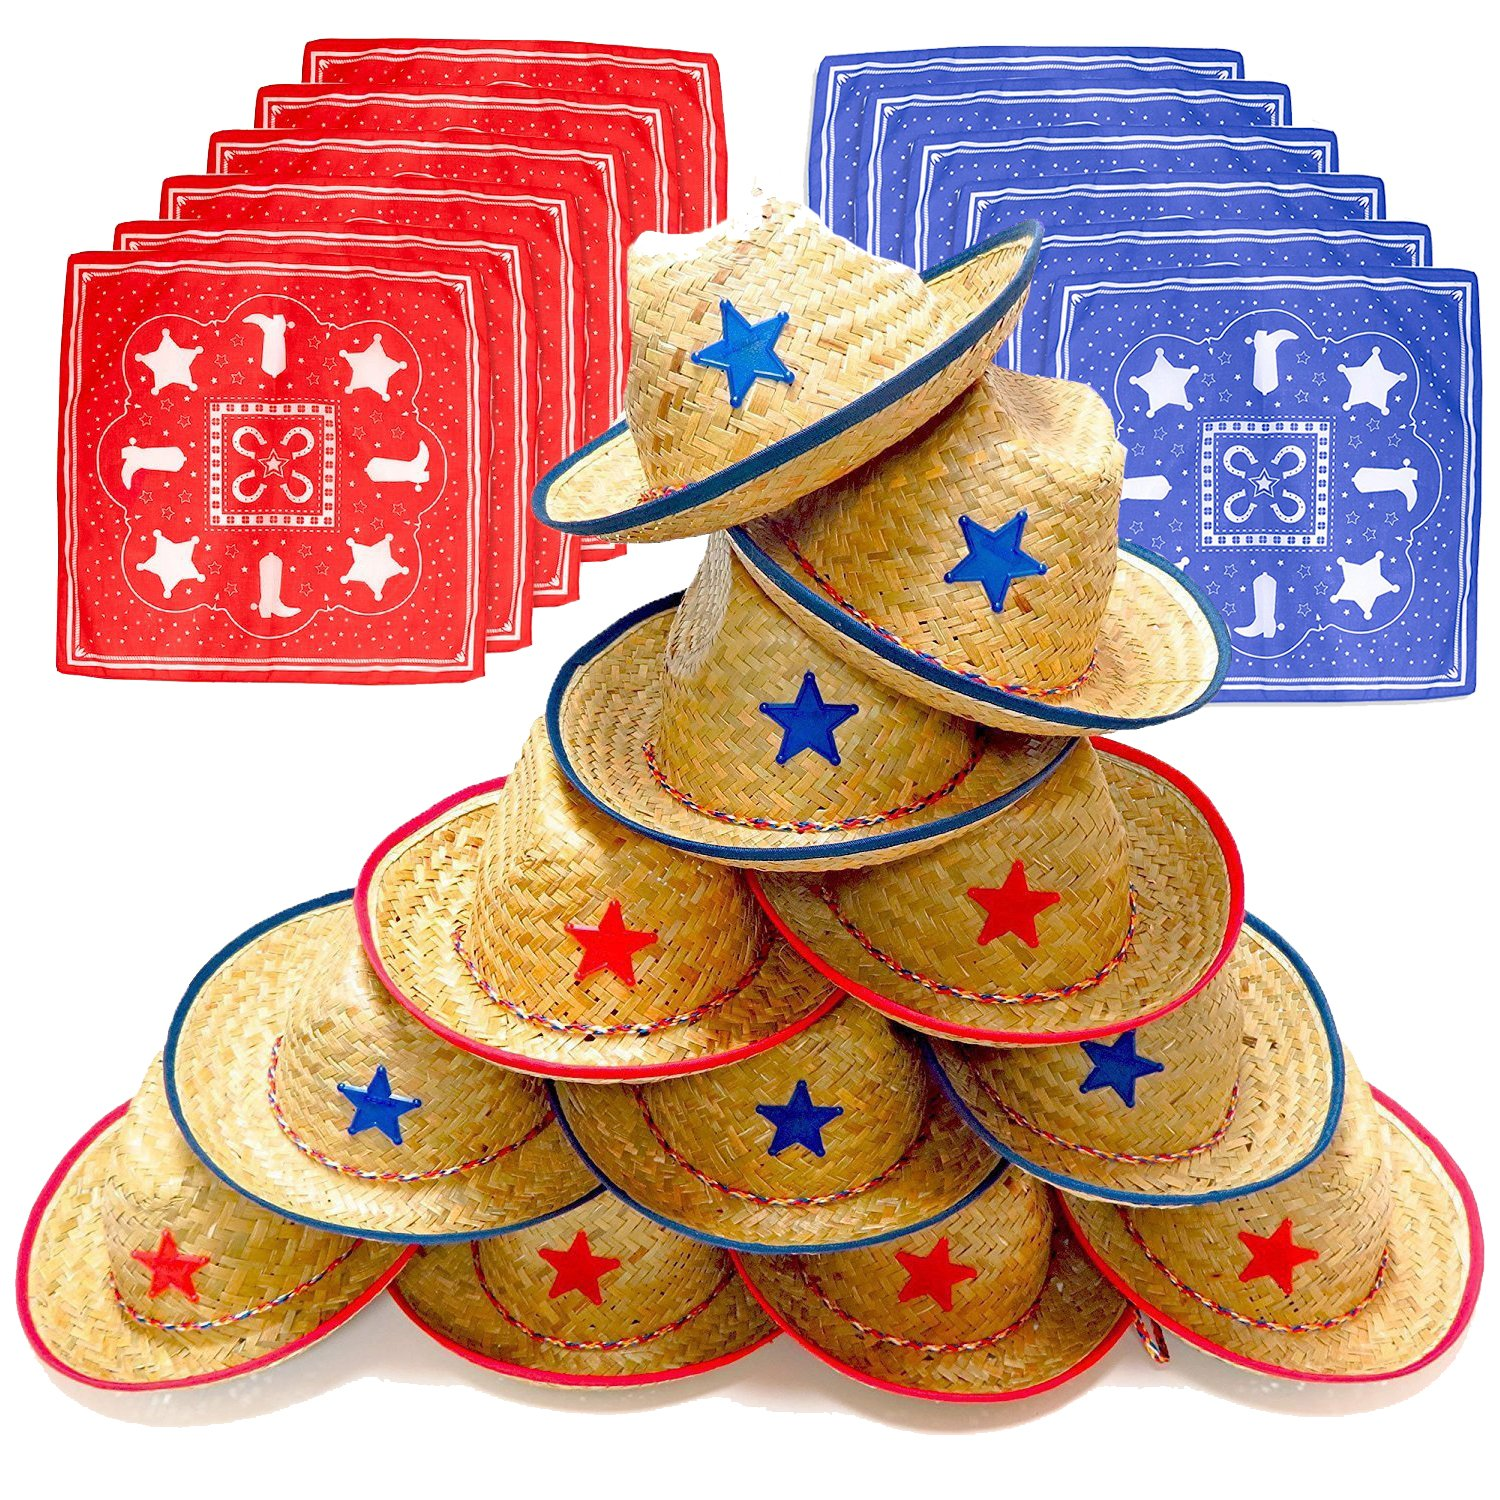 Dozen Straw Cowboy Hats with Cowboy Bandanas (6 Red & 6 Blue) for Kids - Makes Great Birthday Party Hats for Boys and Girls